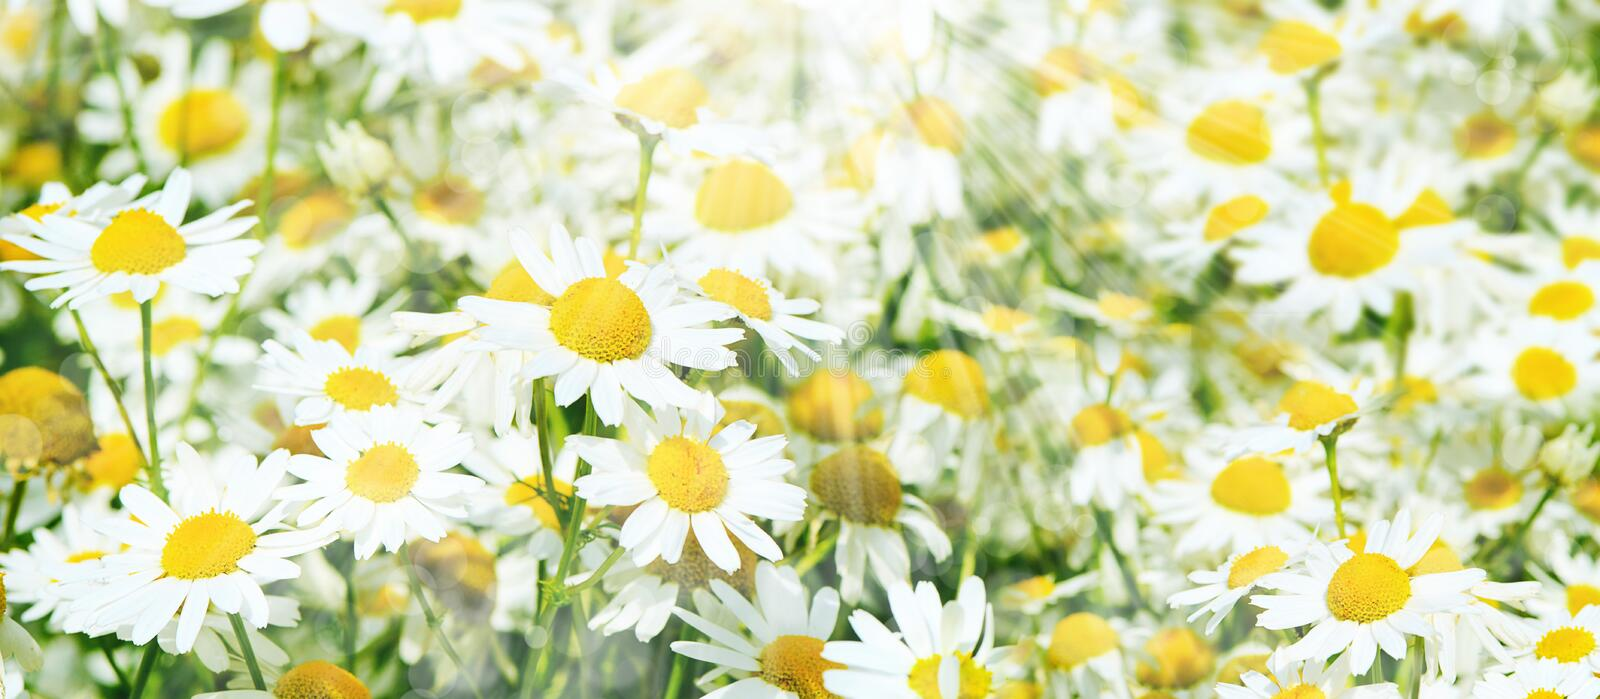 Summer field with daisies stock photo